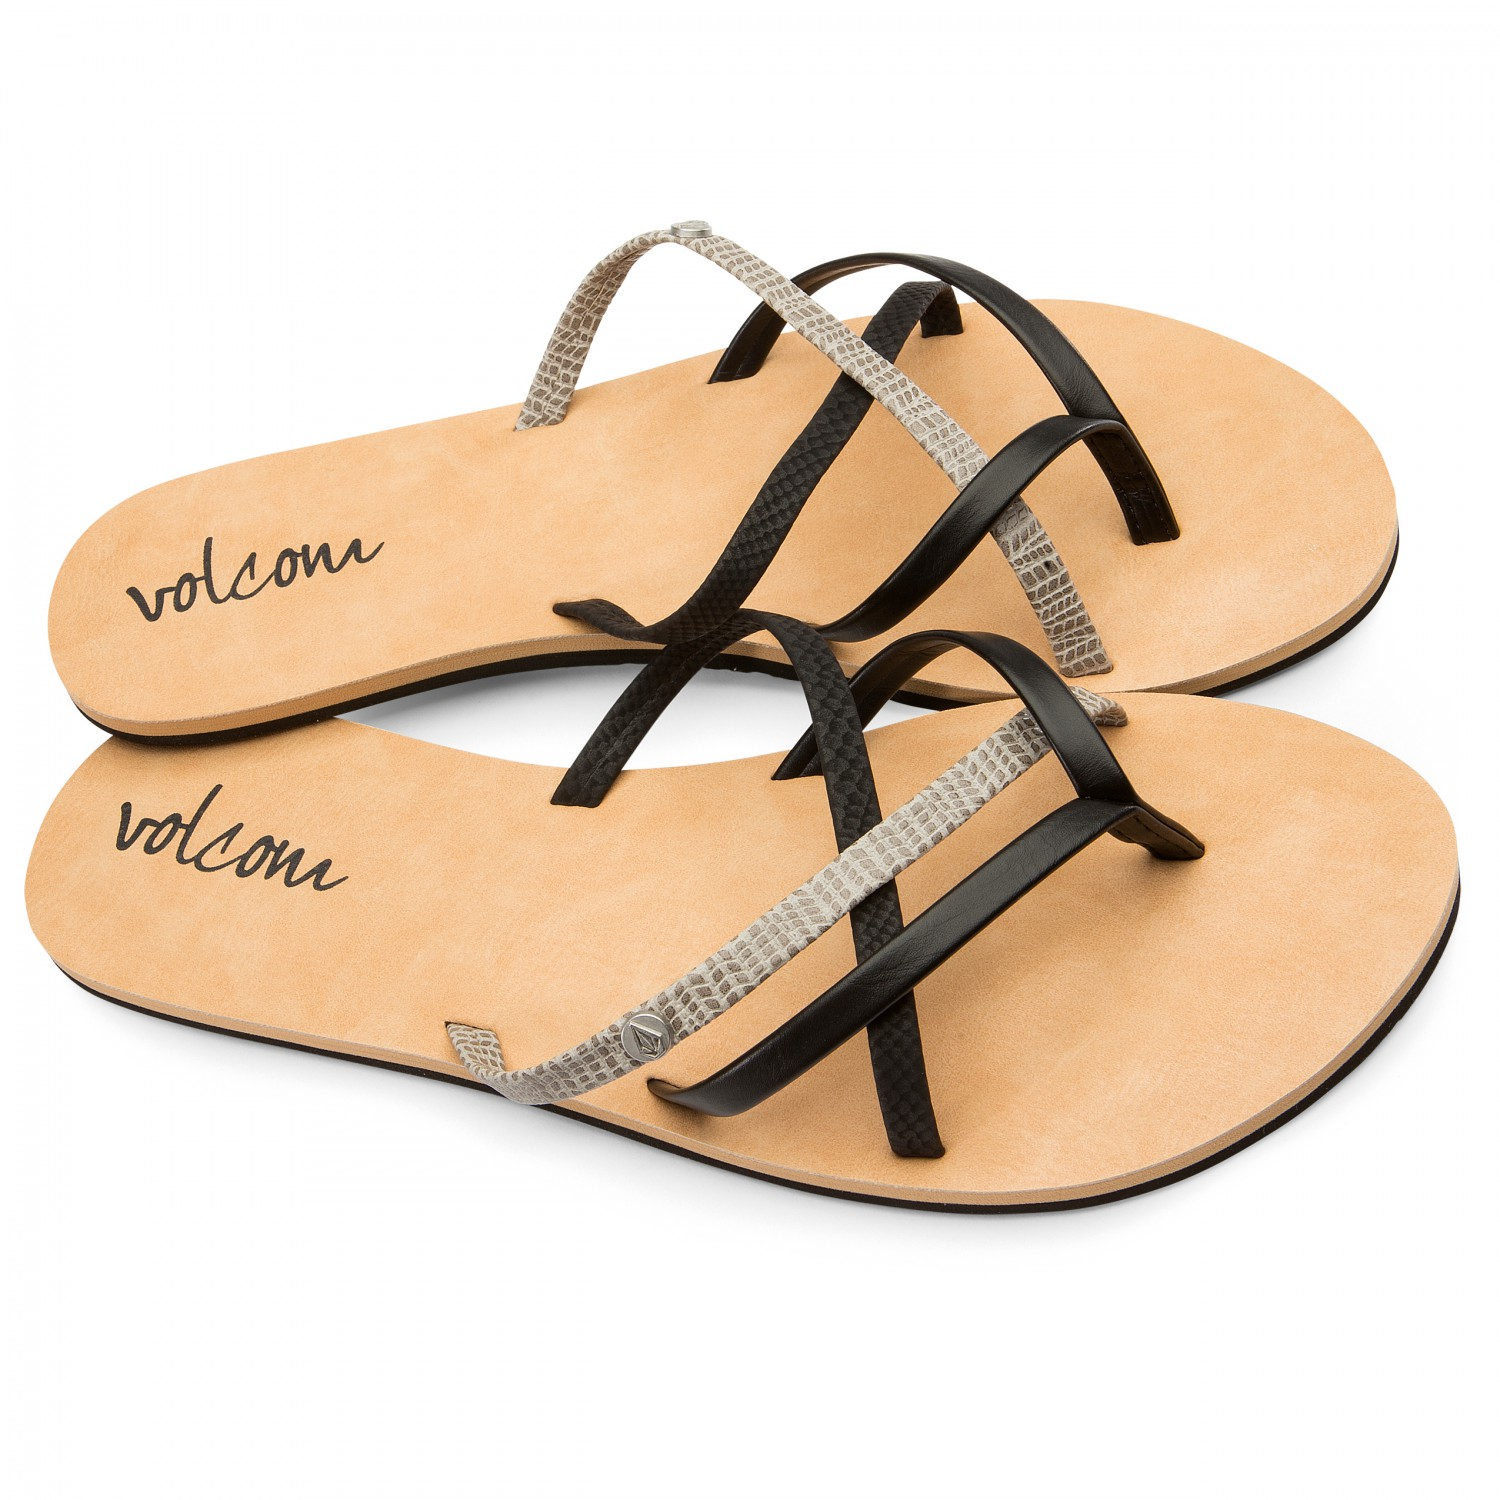 Volcom New School Sandalen Women's Brown Sandal Combo7us dxoCBe